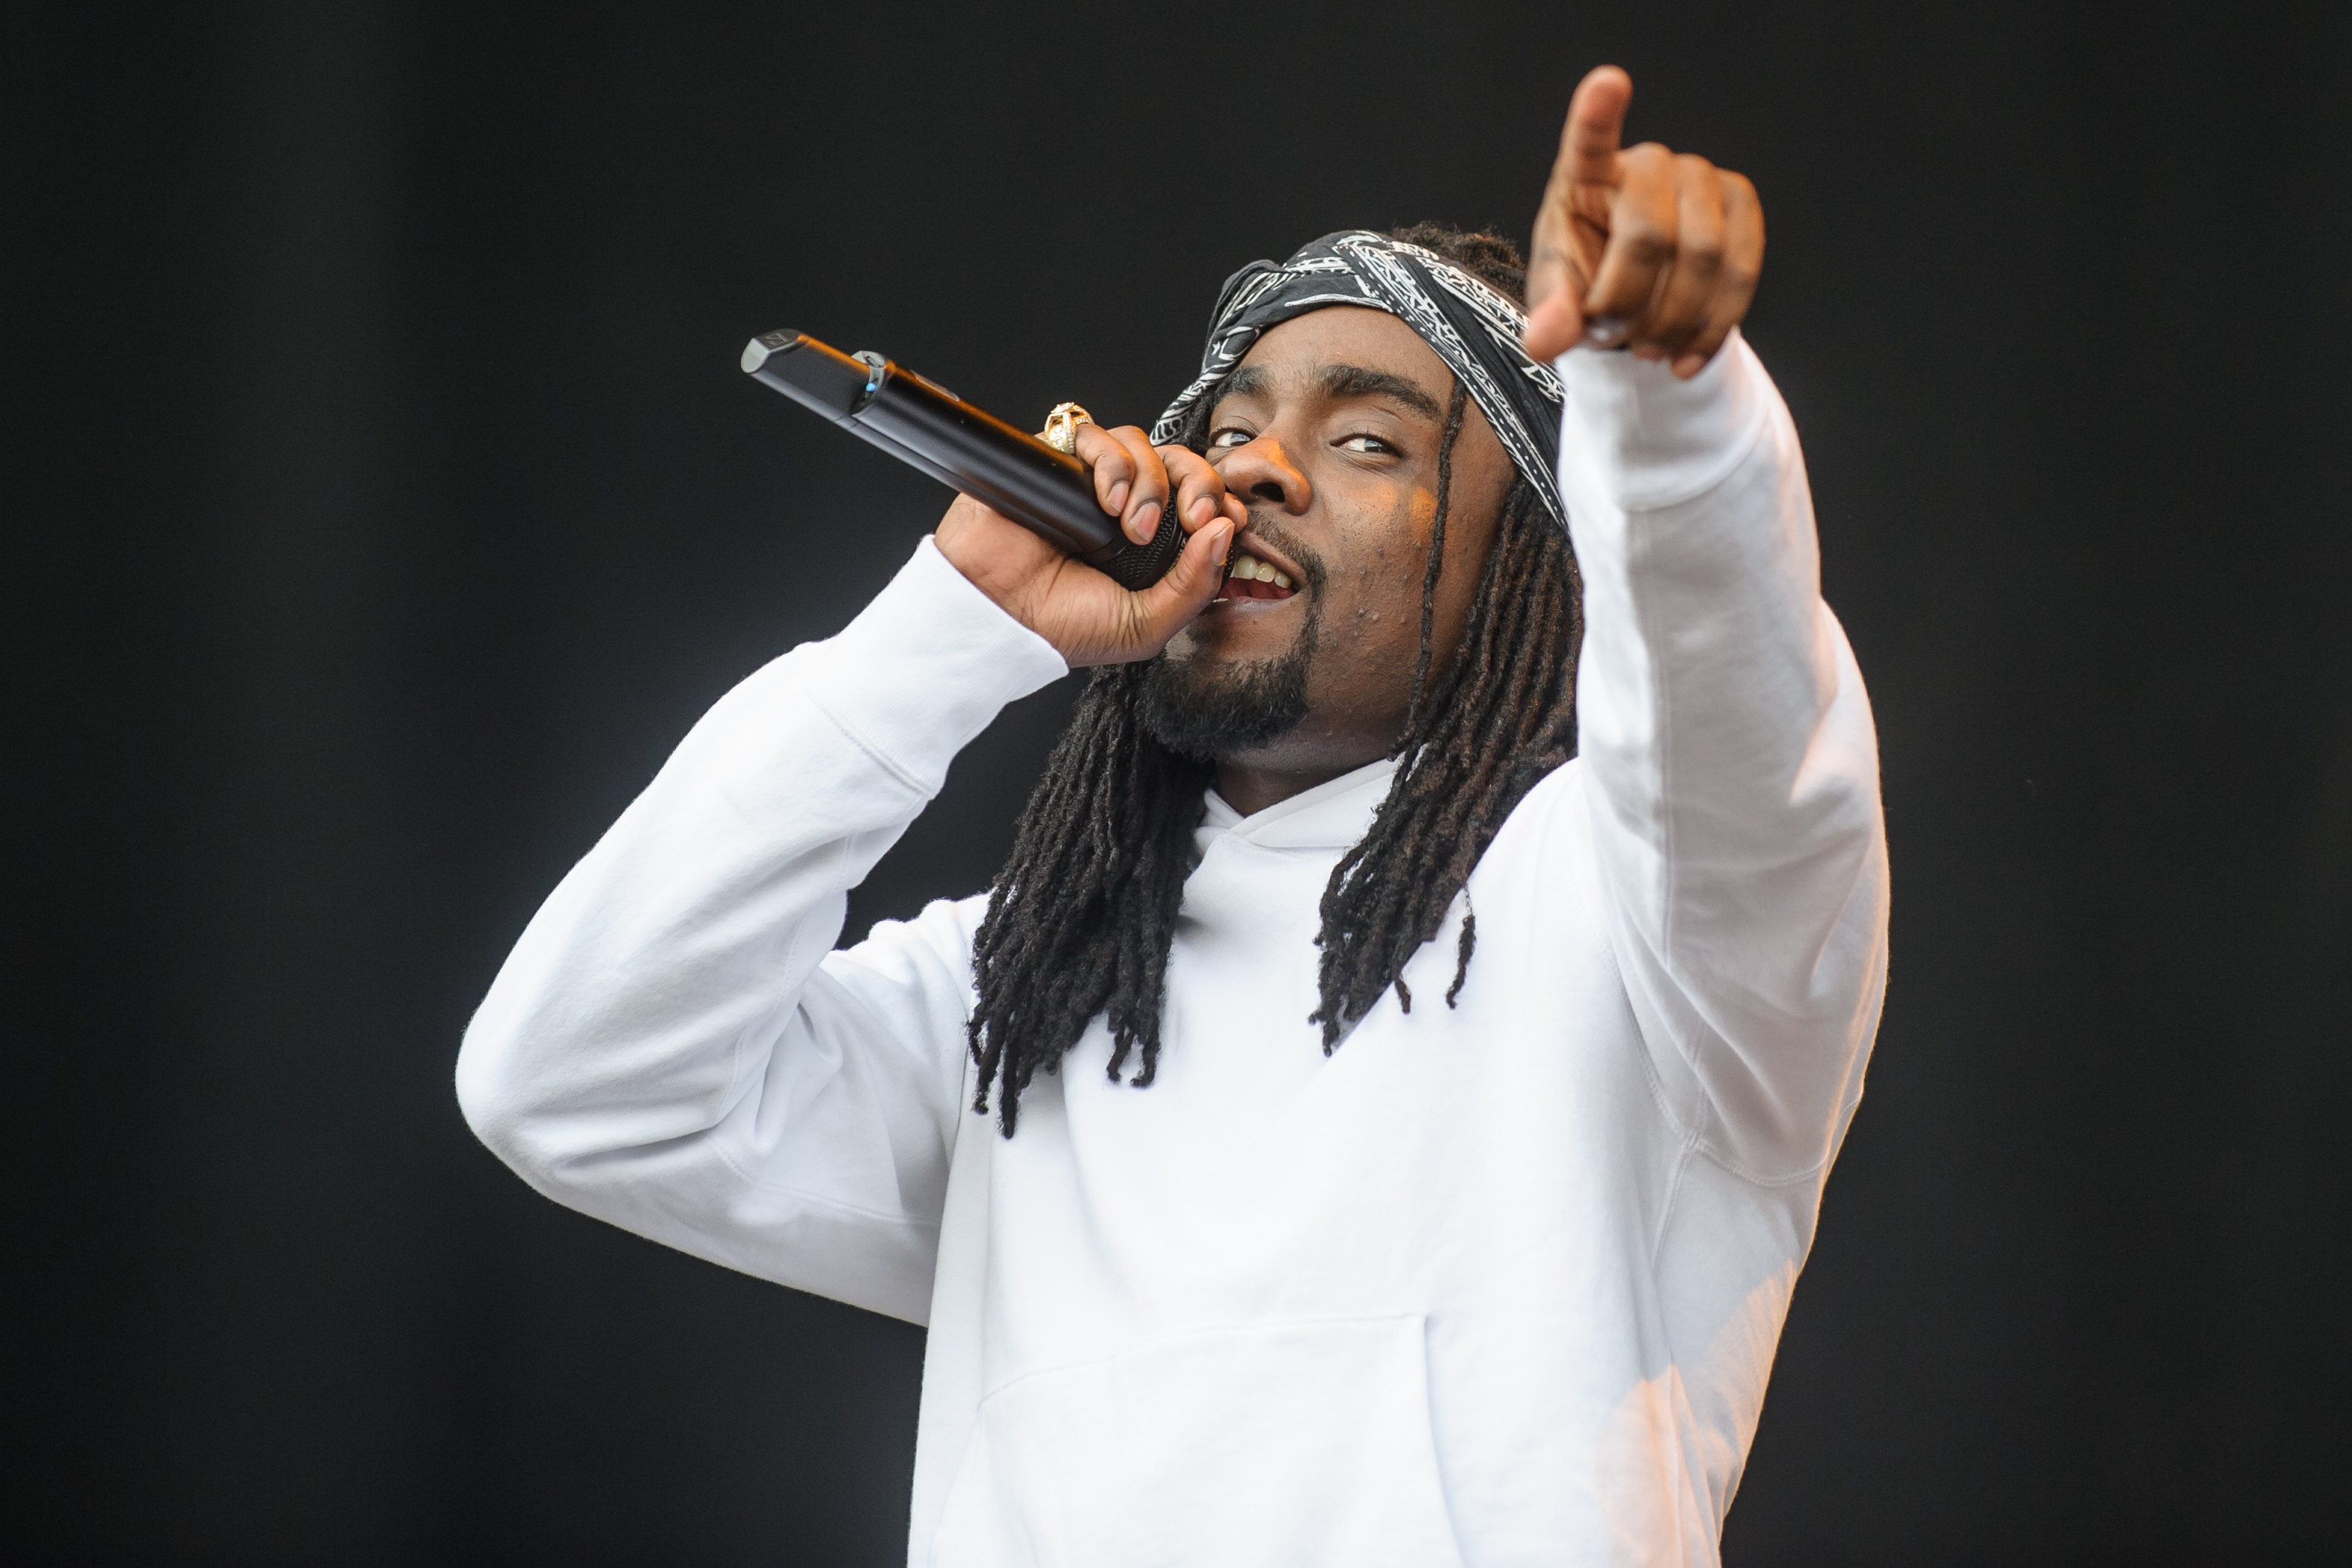 WASHINGTON, DC - September 26th, 2015 - Wale performs at the 2015 Landmark Festival in Washington, D.C.